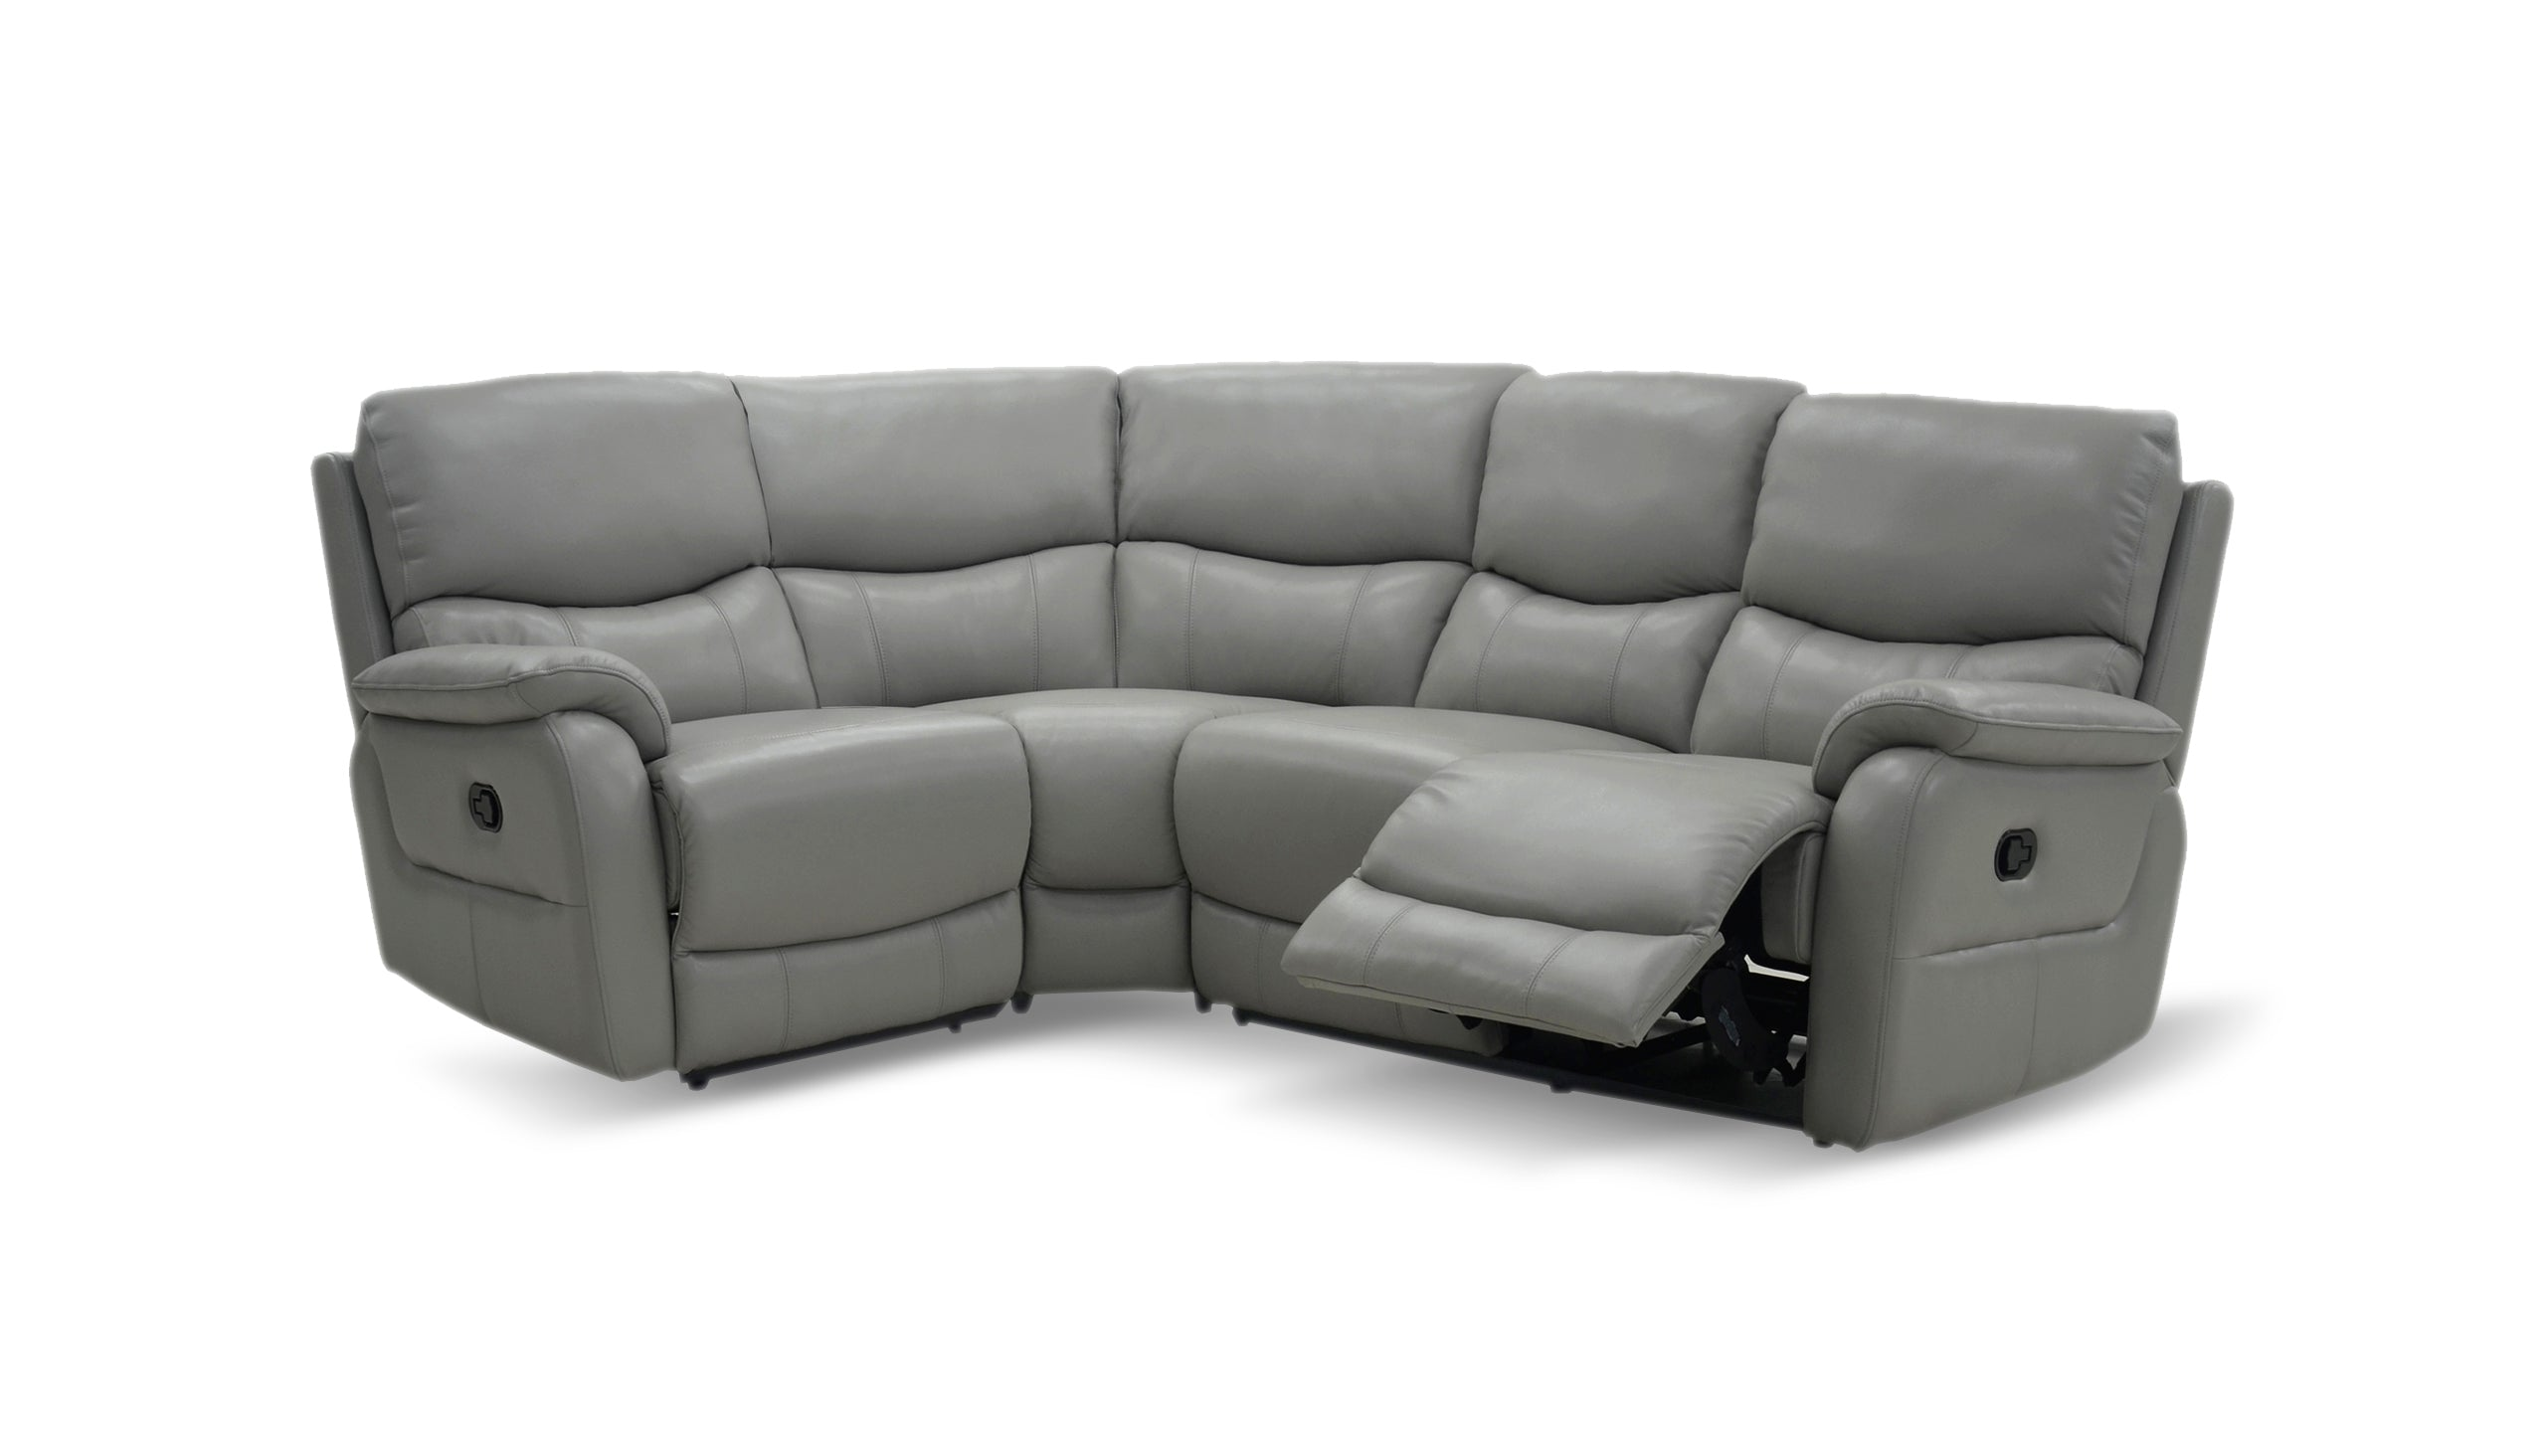 Evelyn Right Hand Facing 2 Corner 1 Power Recliner Sofa in Leather